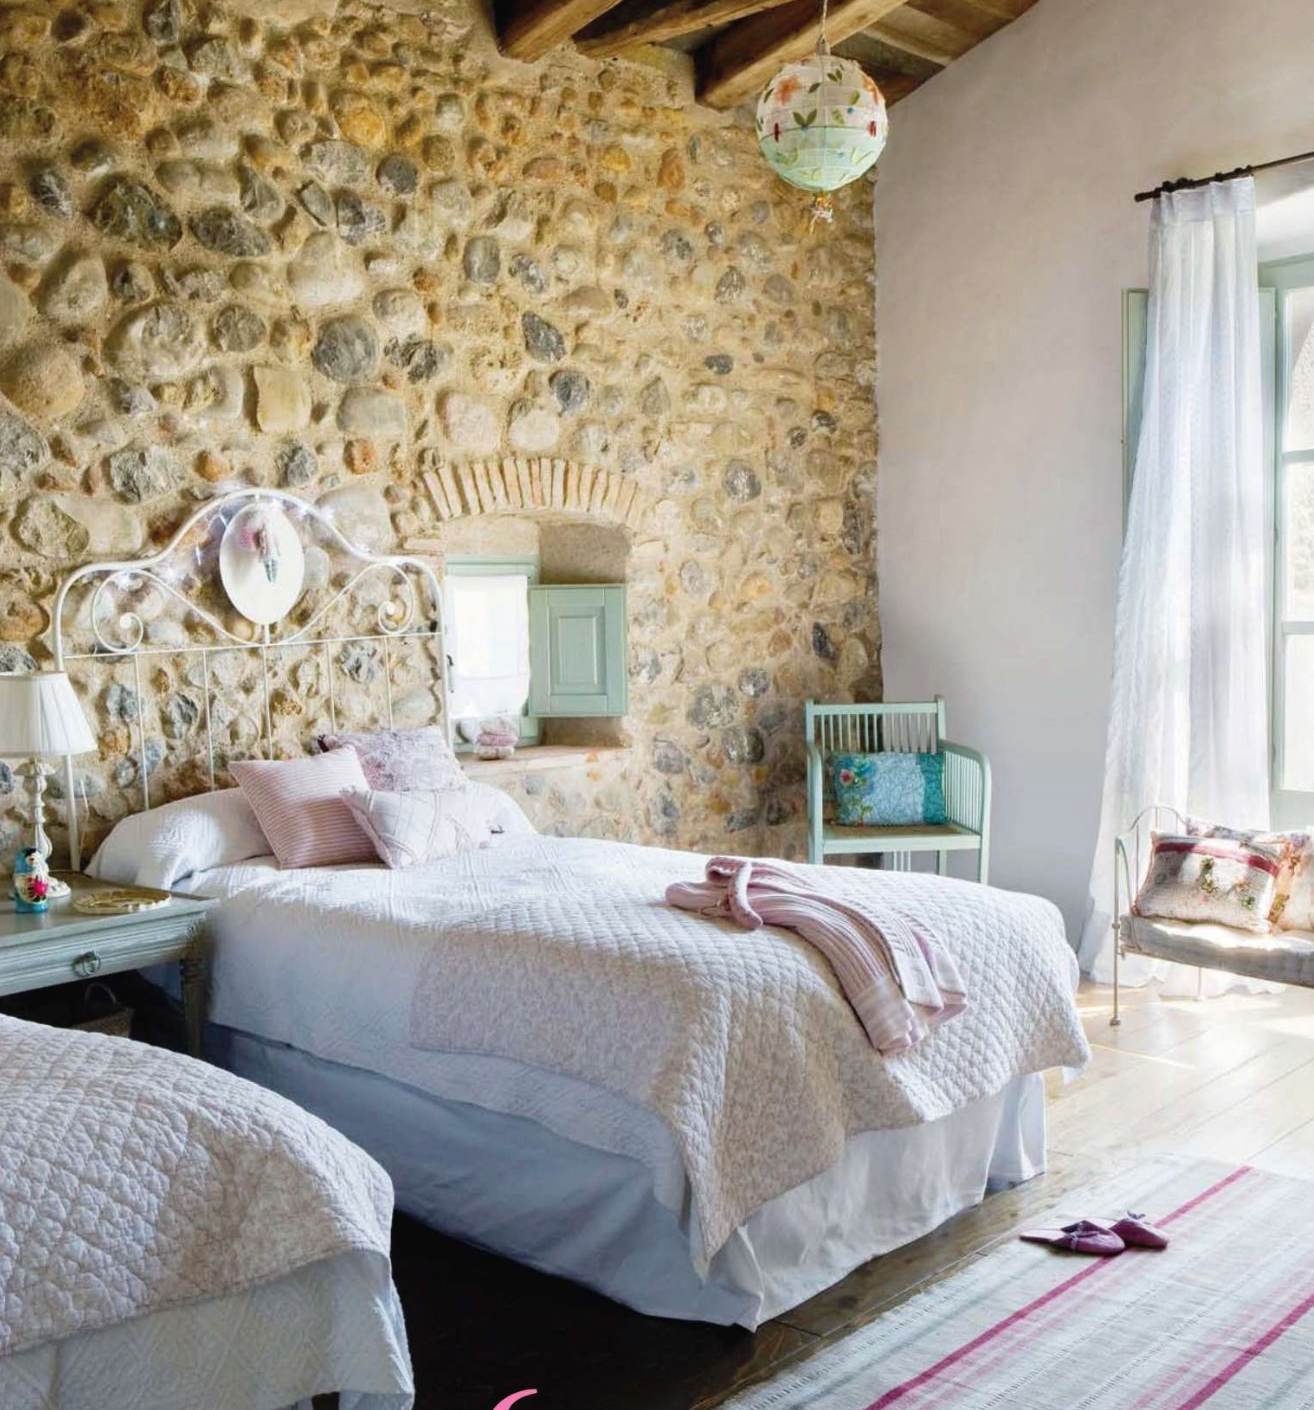 Exposed stone walls in interior design 13 decorating tips for Interior decorating tips